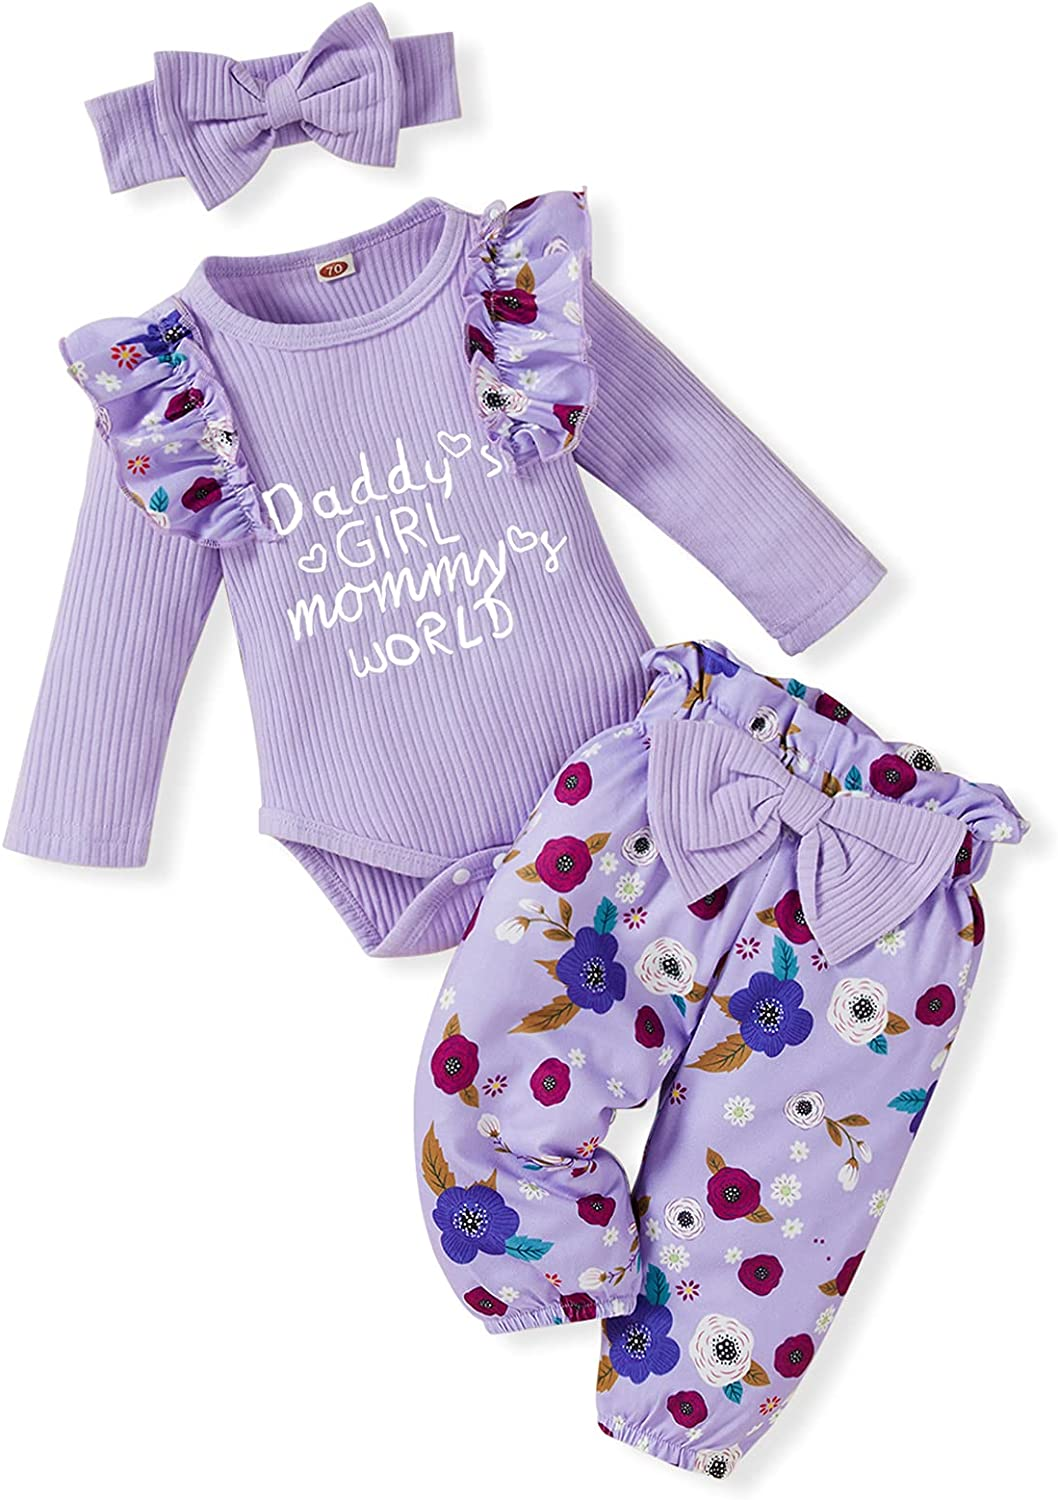 Newborn Baby Girl Clothes Infant Ruffle Long Sleeves Knit Romper Floral Pants Headband 3Pcs Casual Outfits